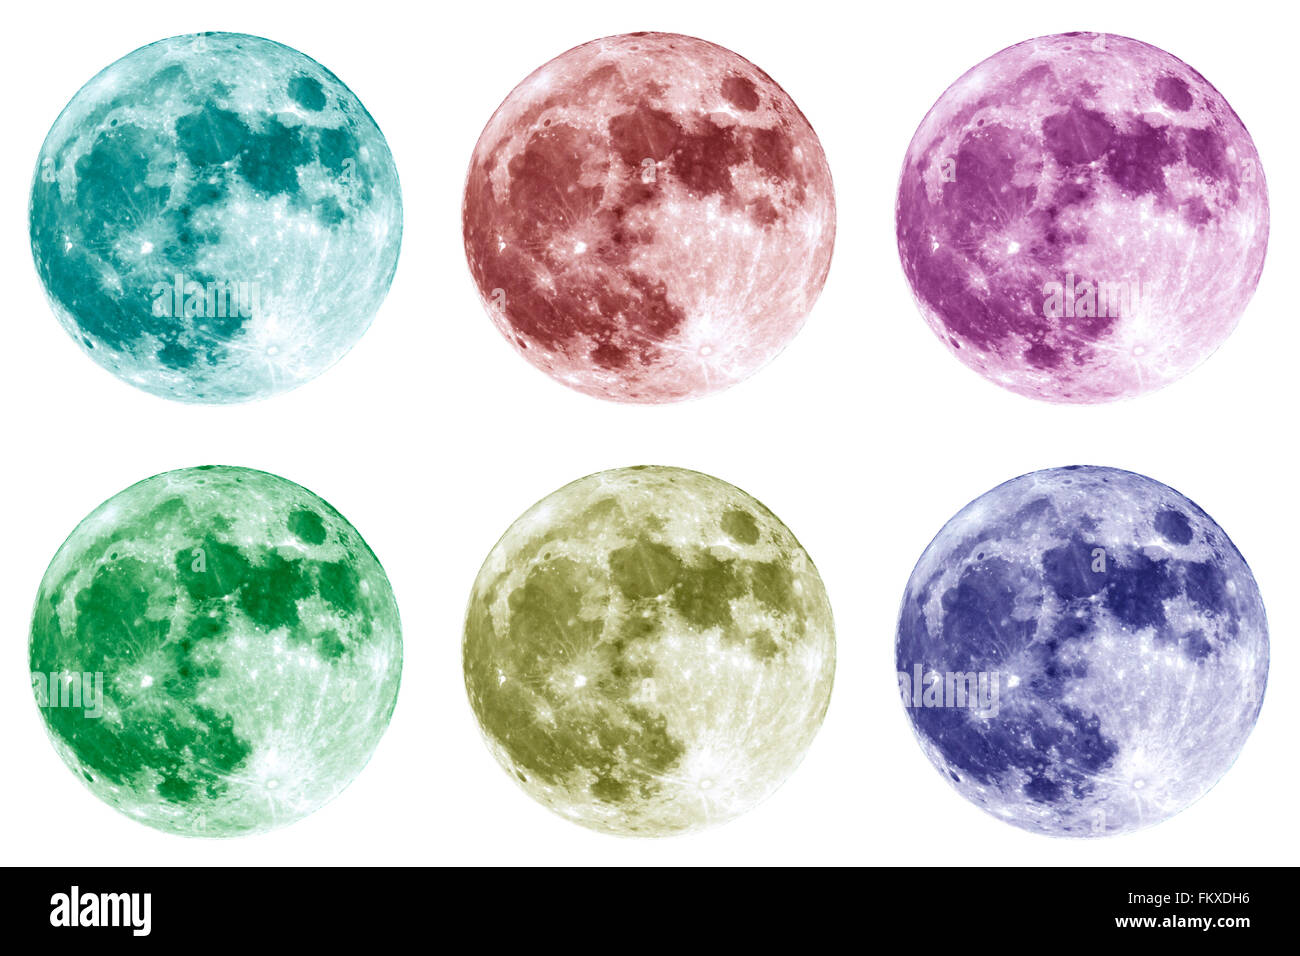 Six different colors collage of the full Moon is seen isolated on a white background. High contrast, high resolution - Stock Image